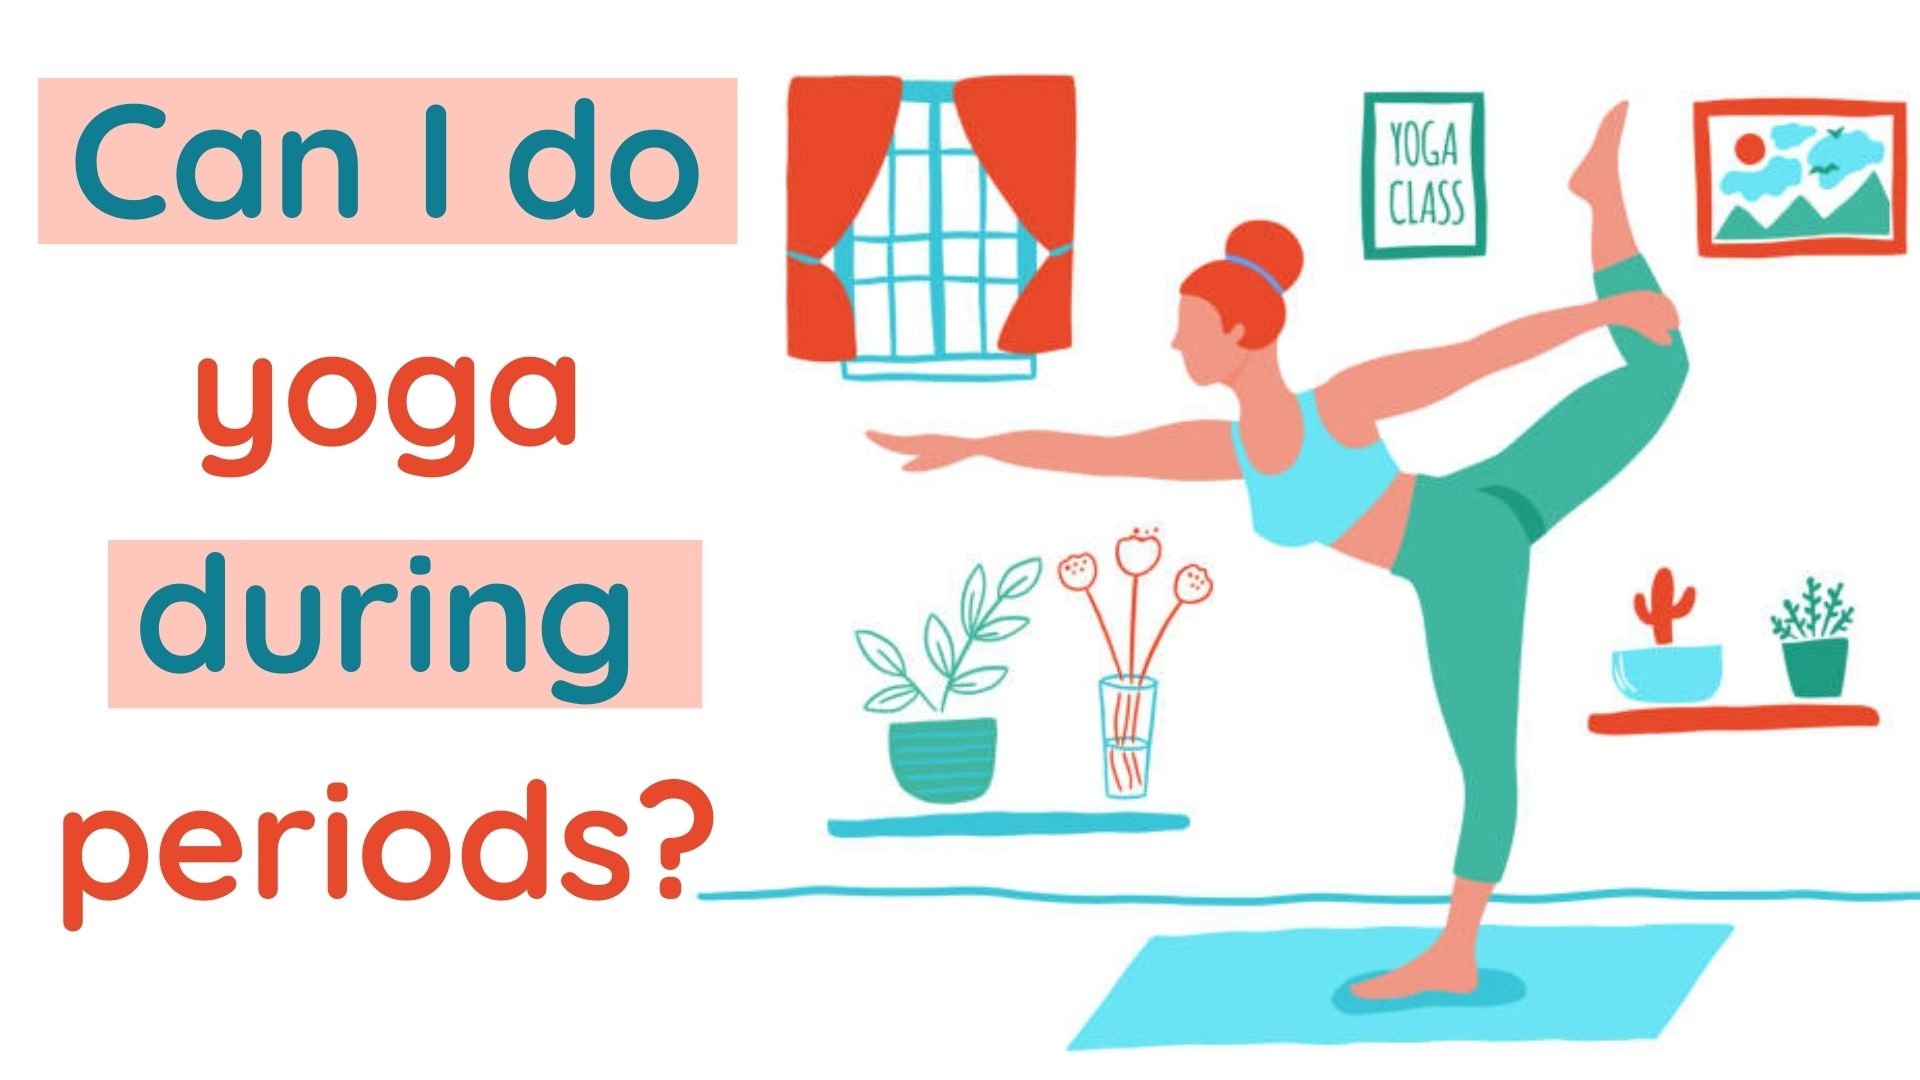 Can I do yoga during periods